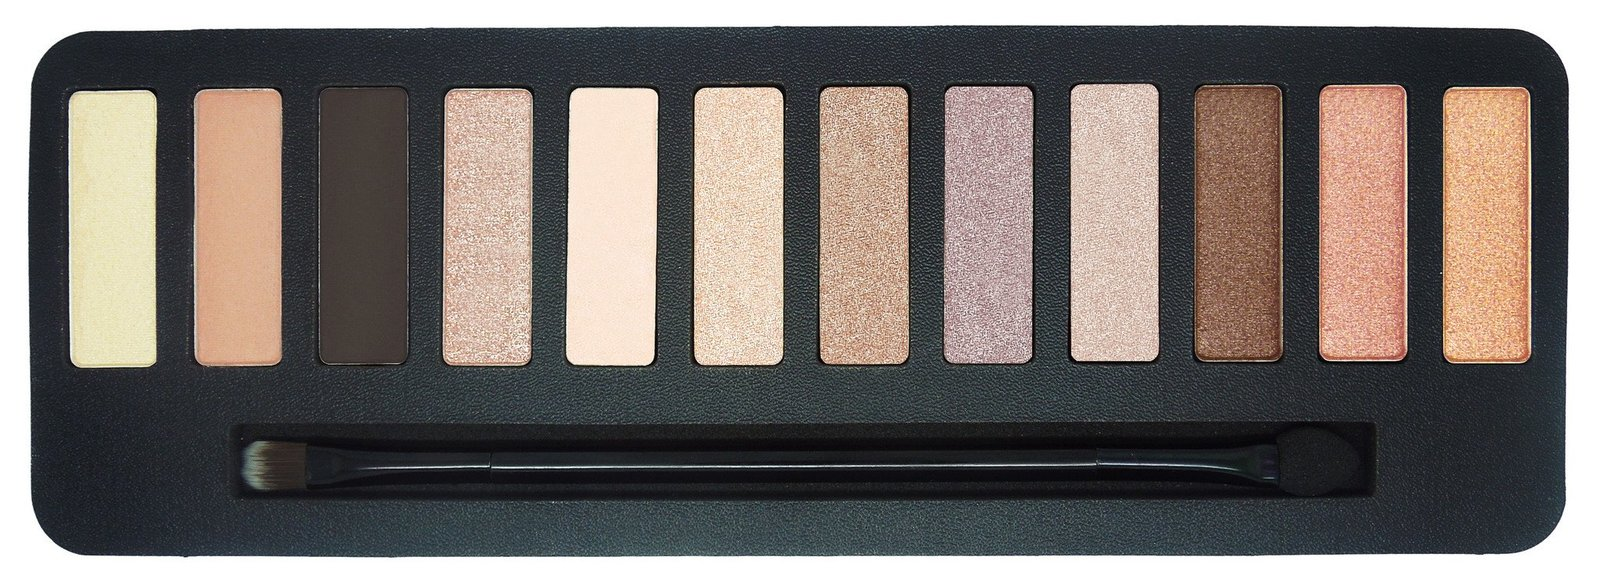 W7 Beat It Compact Eyeshadow Palette image